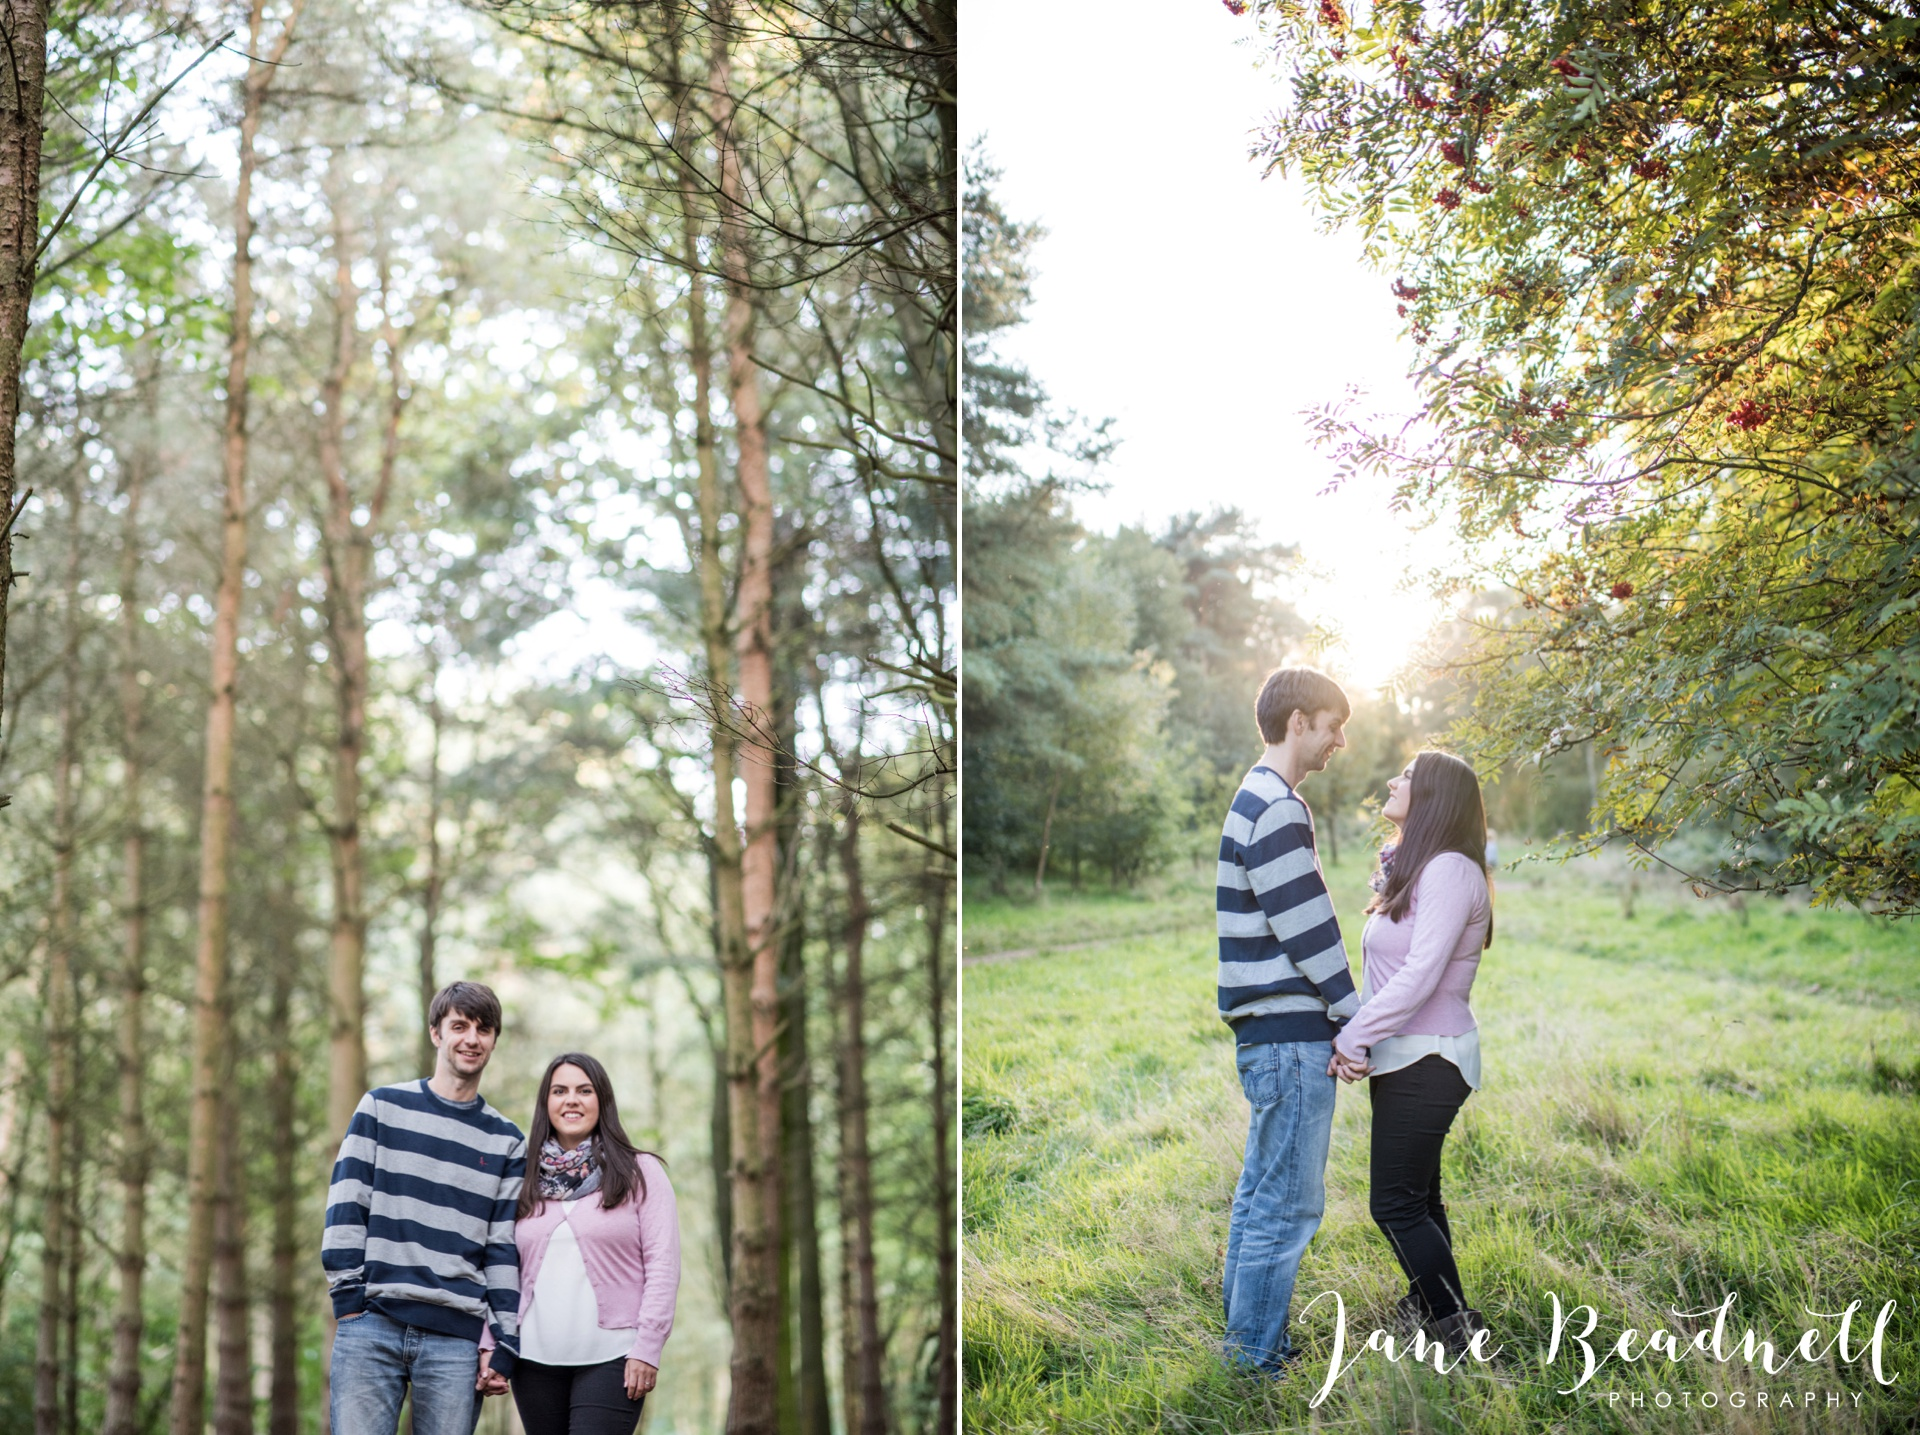 Otley Chevin engagement photography by Jane Beadnell Photography_0004